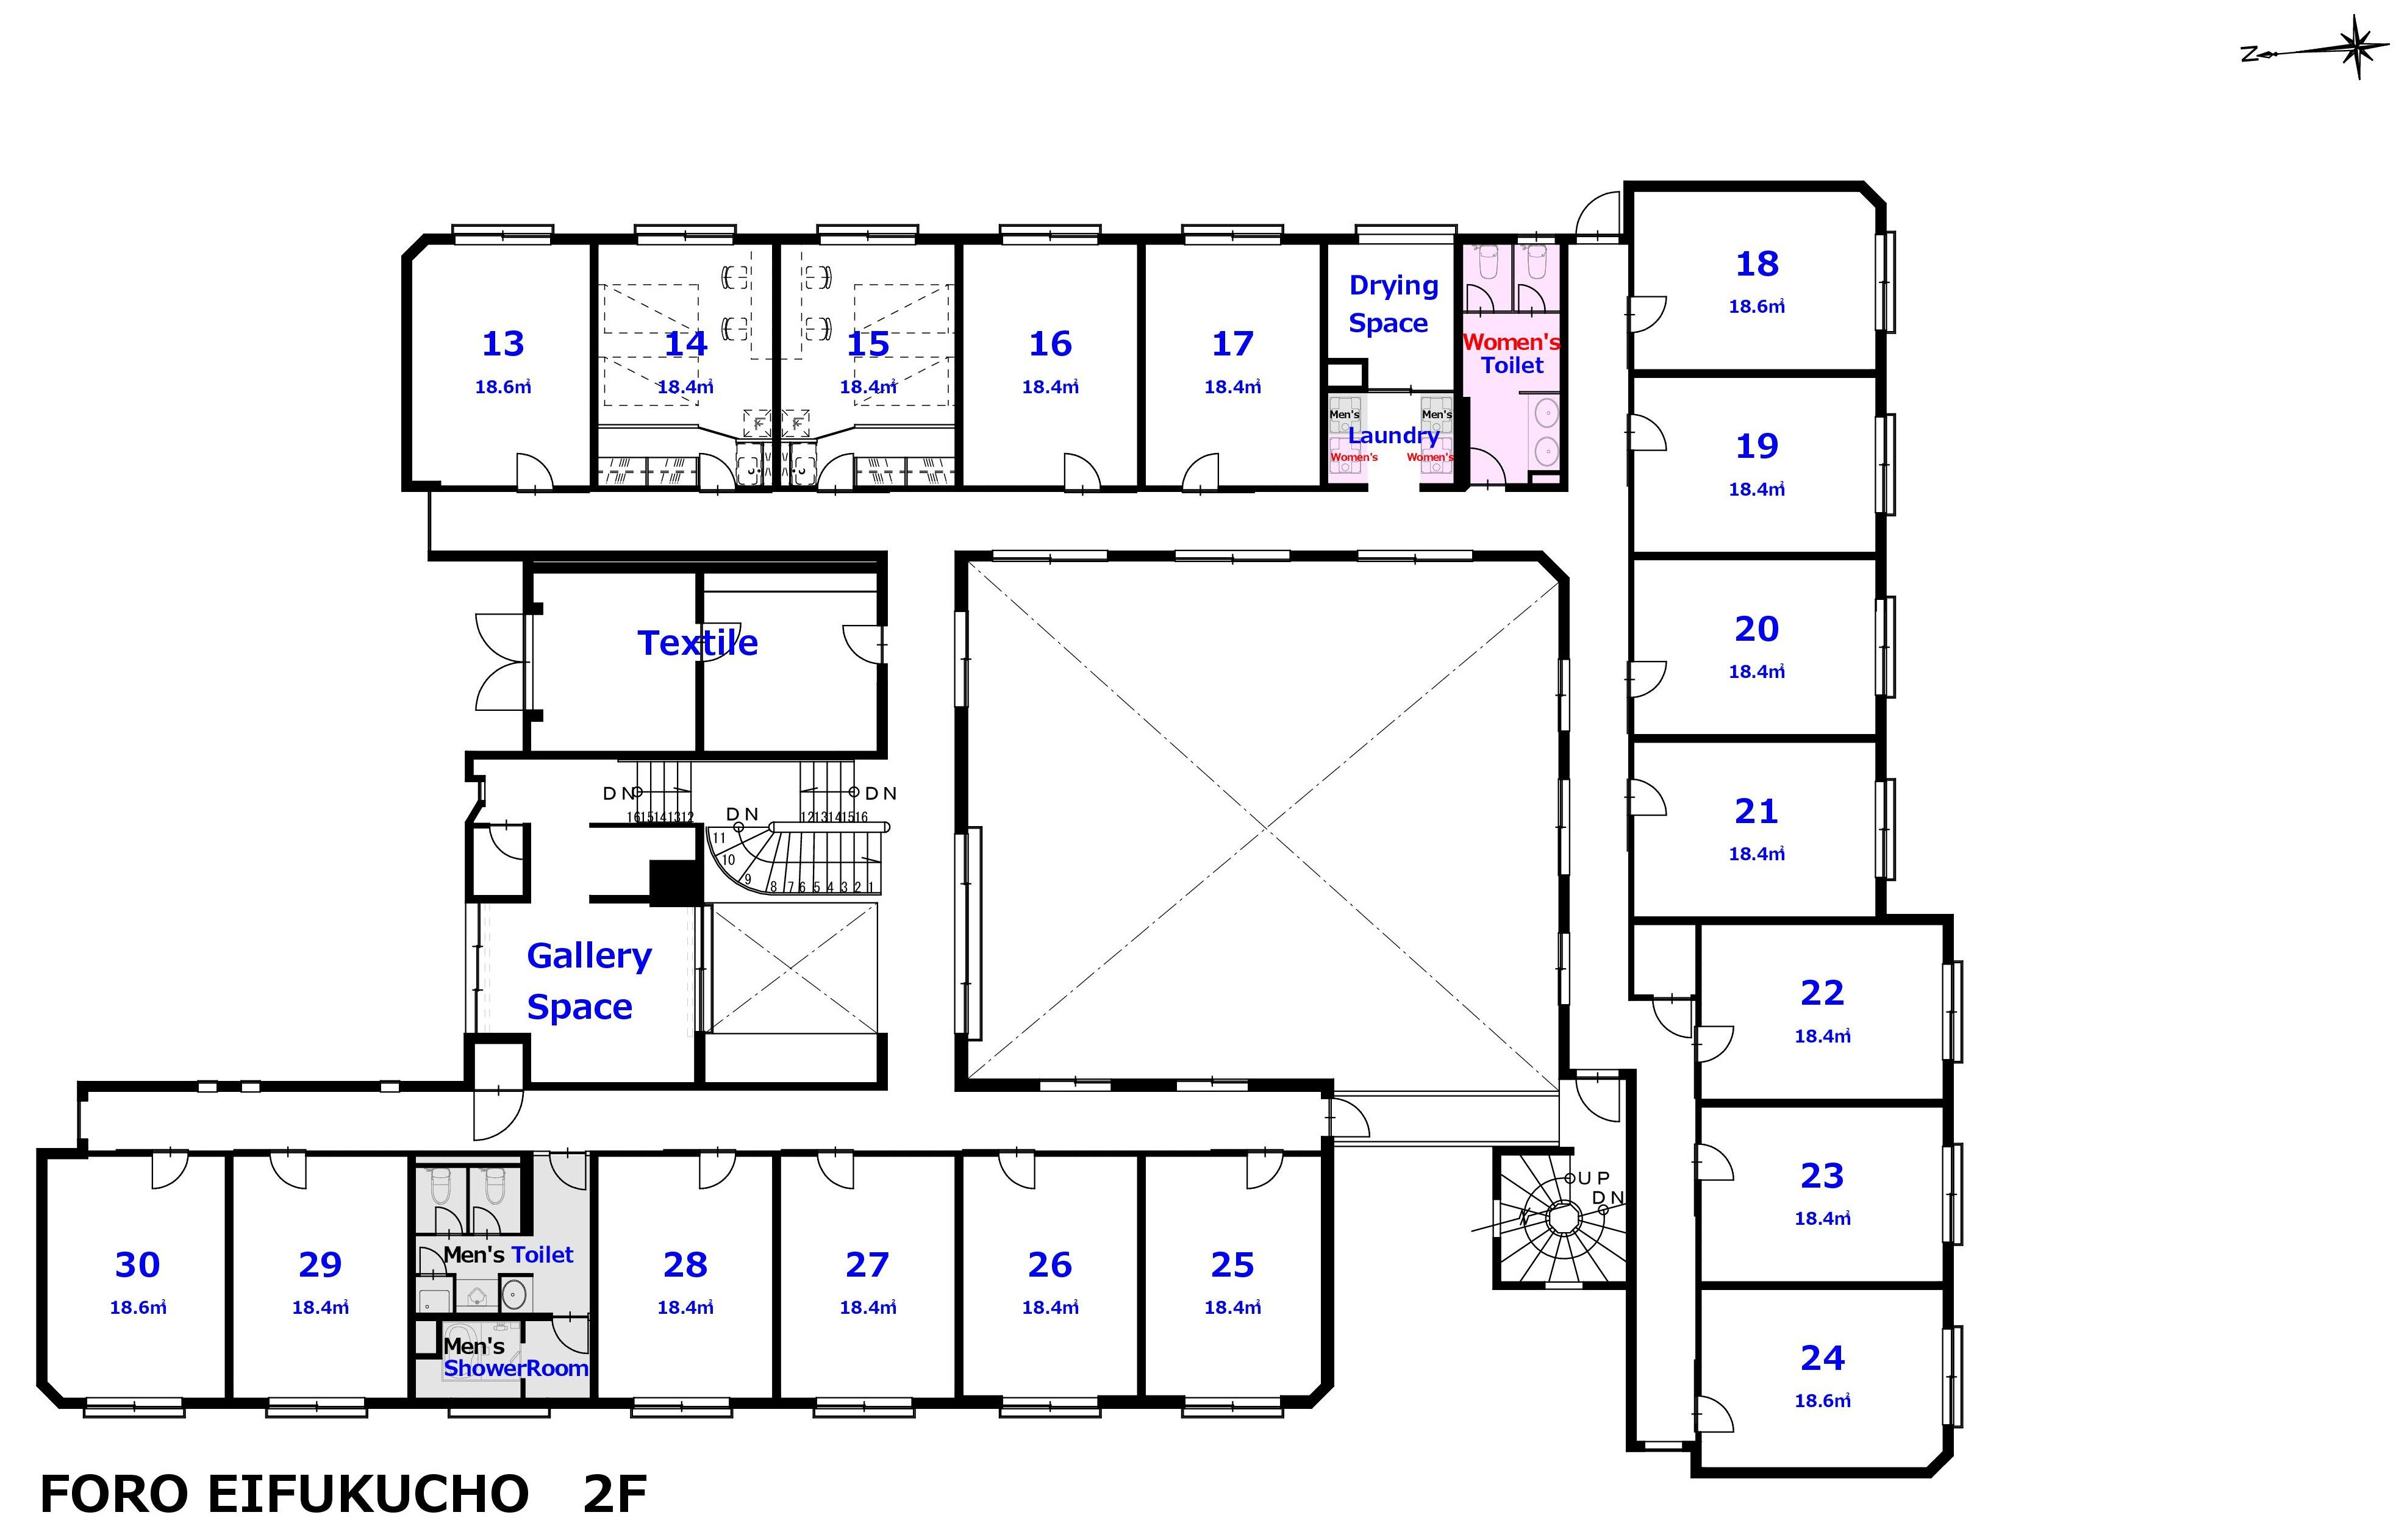 guesthouse sharehouse FORO에이후쿠쵸 floorplan2